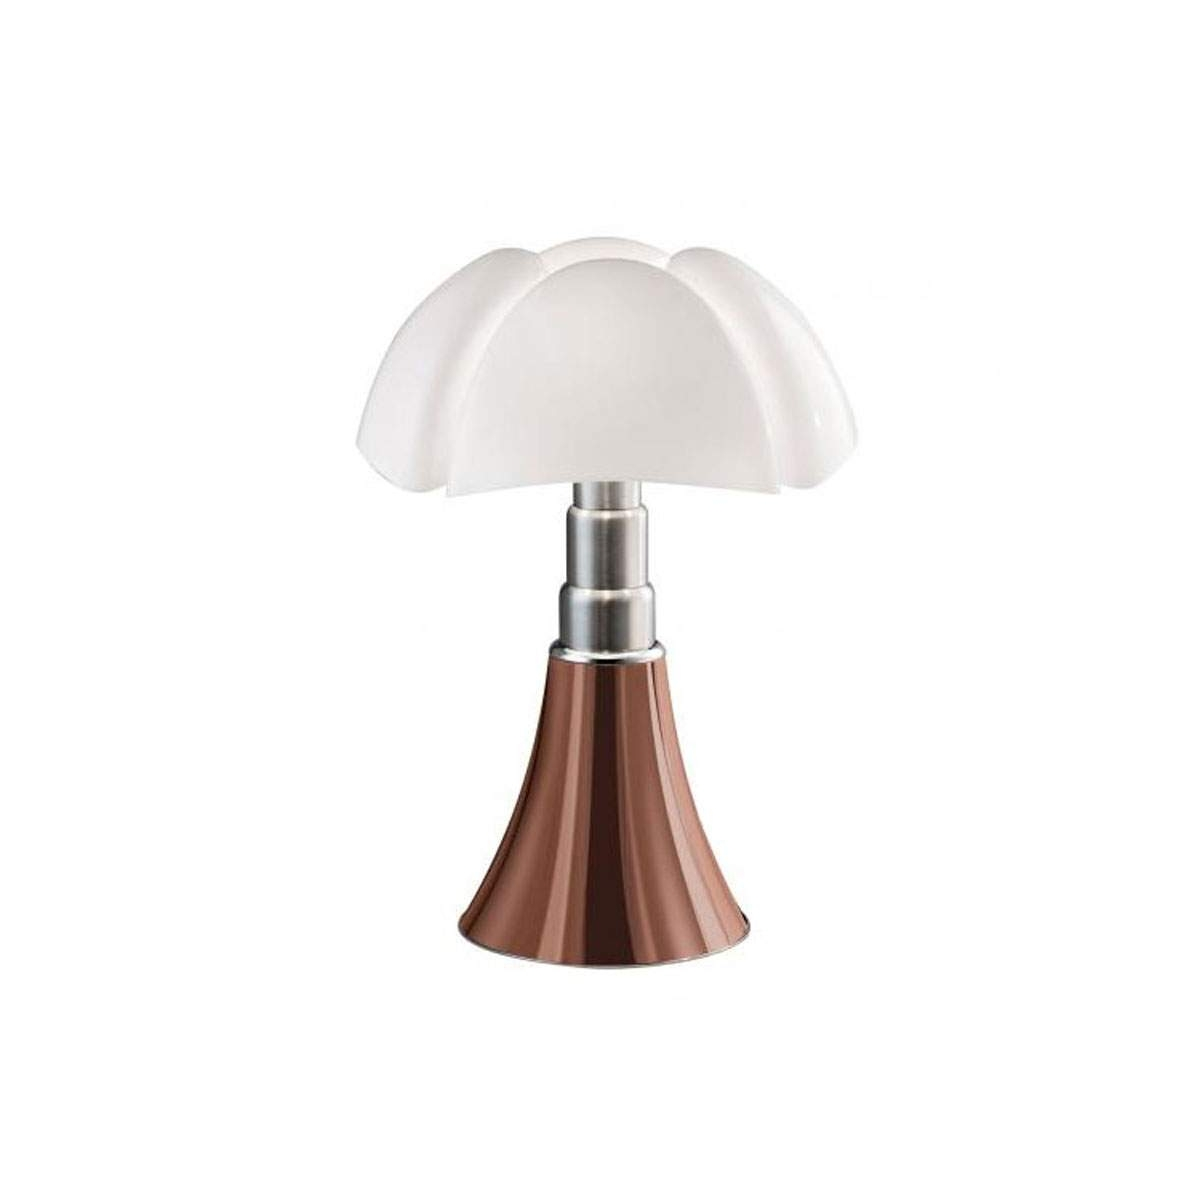 Lampe poser martinelli luce minipipistrello led lampes for But lampe a poser